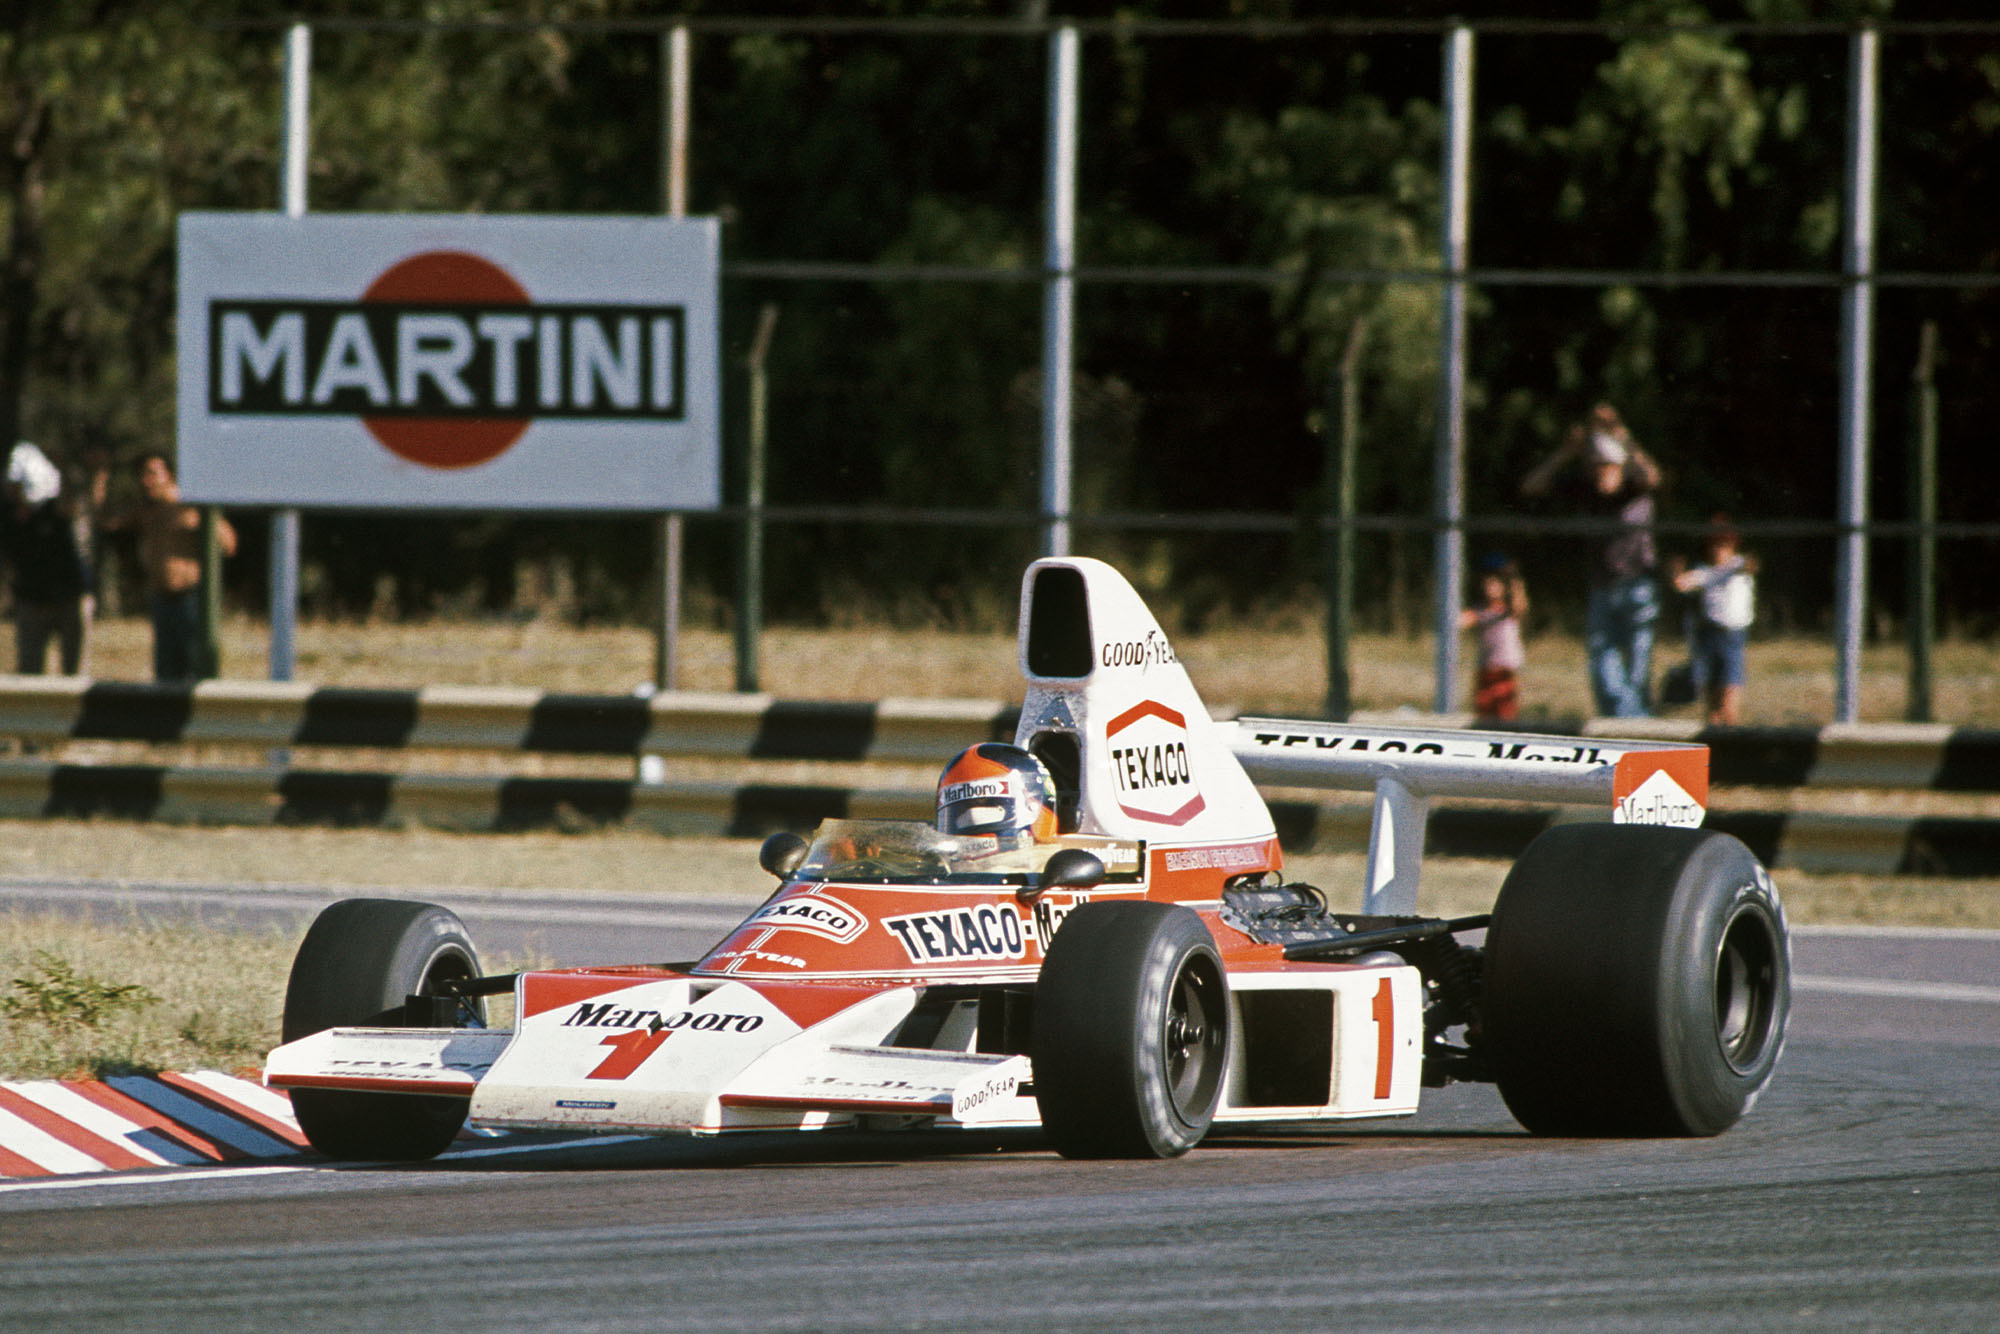 Emerson Fittipaldi sets the pace in his McLaren at the 1975 Argentinian Grand Prix.